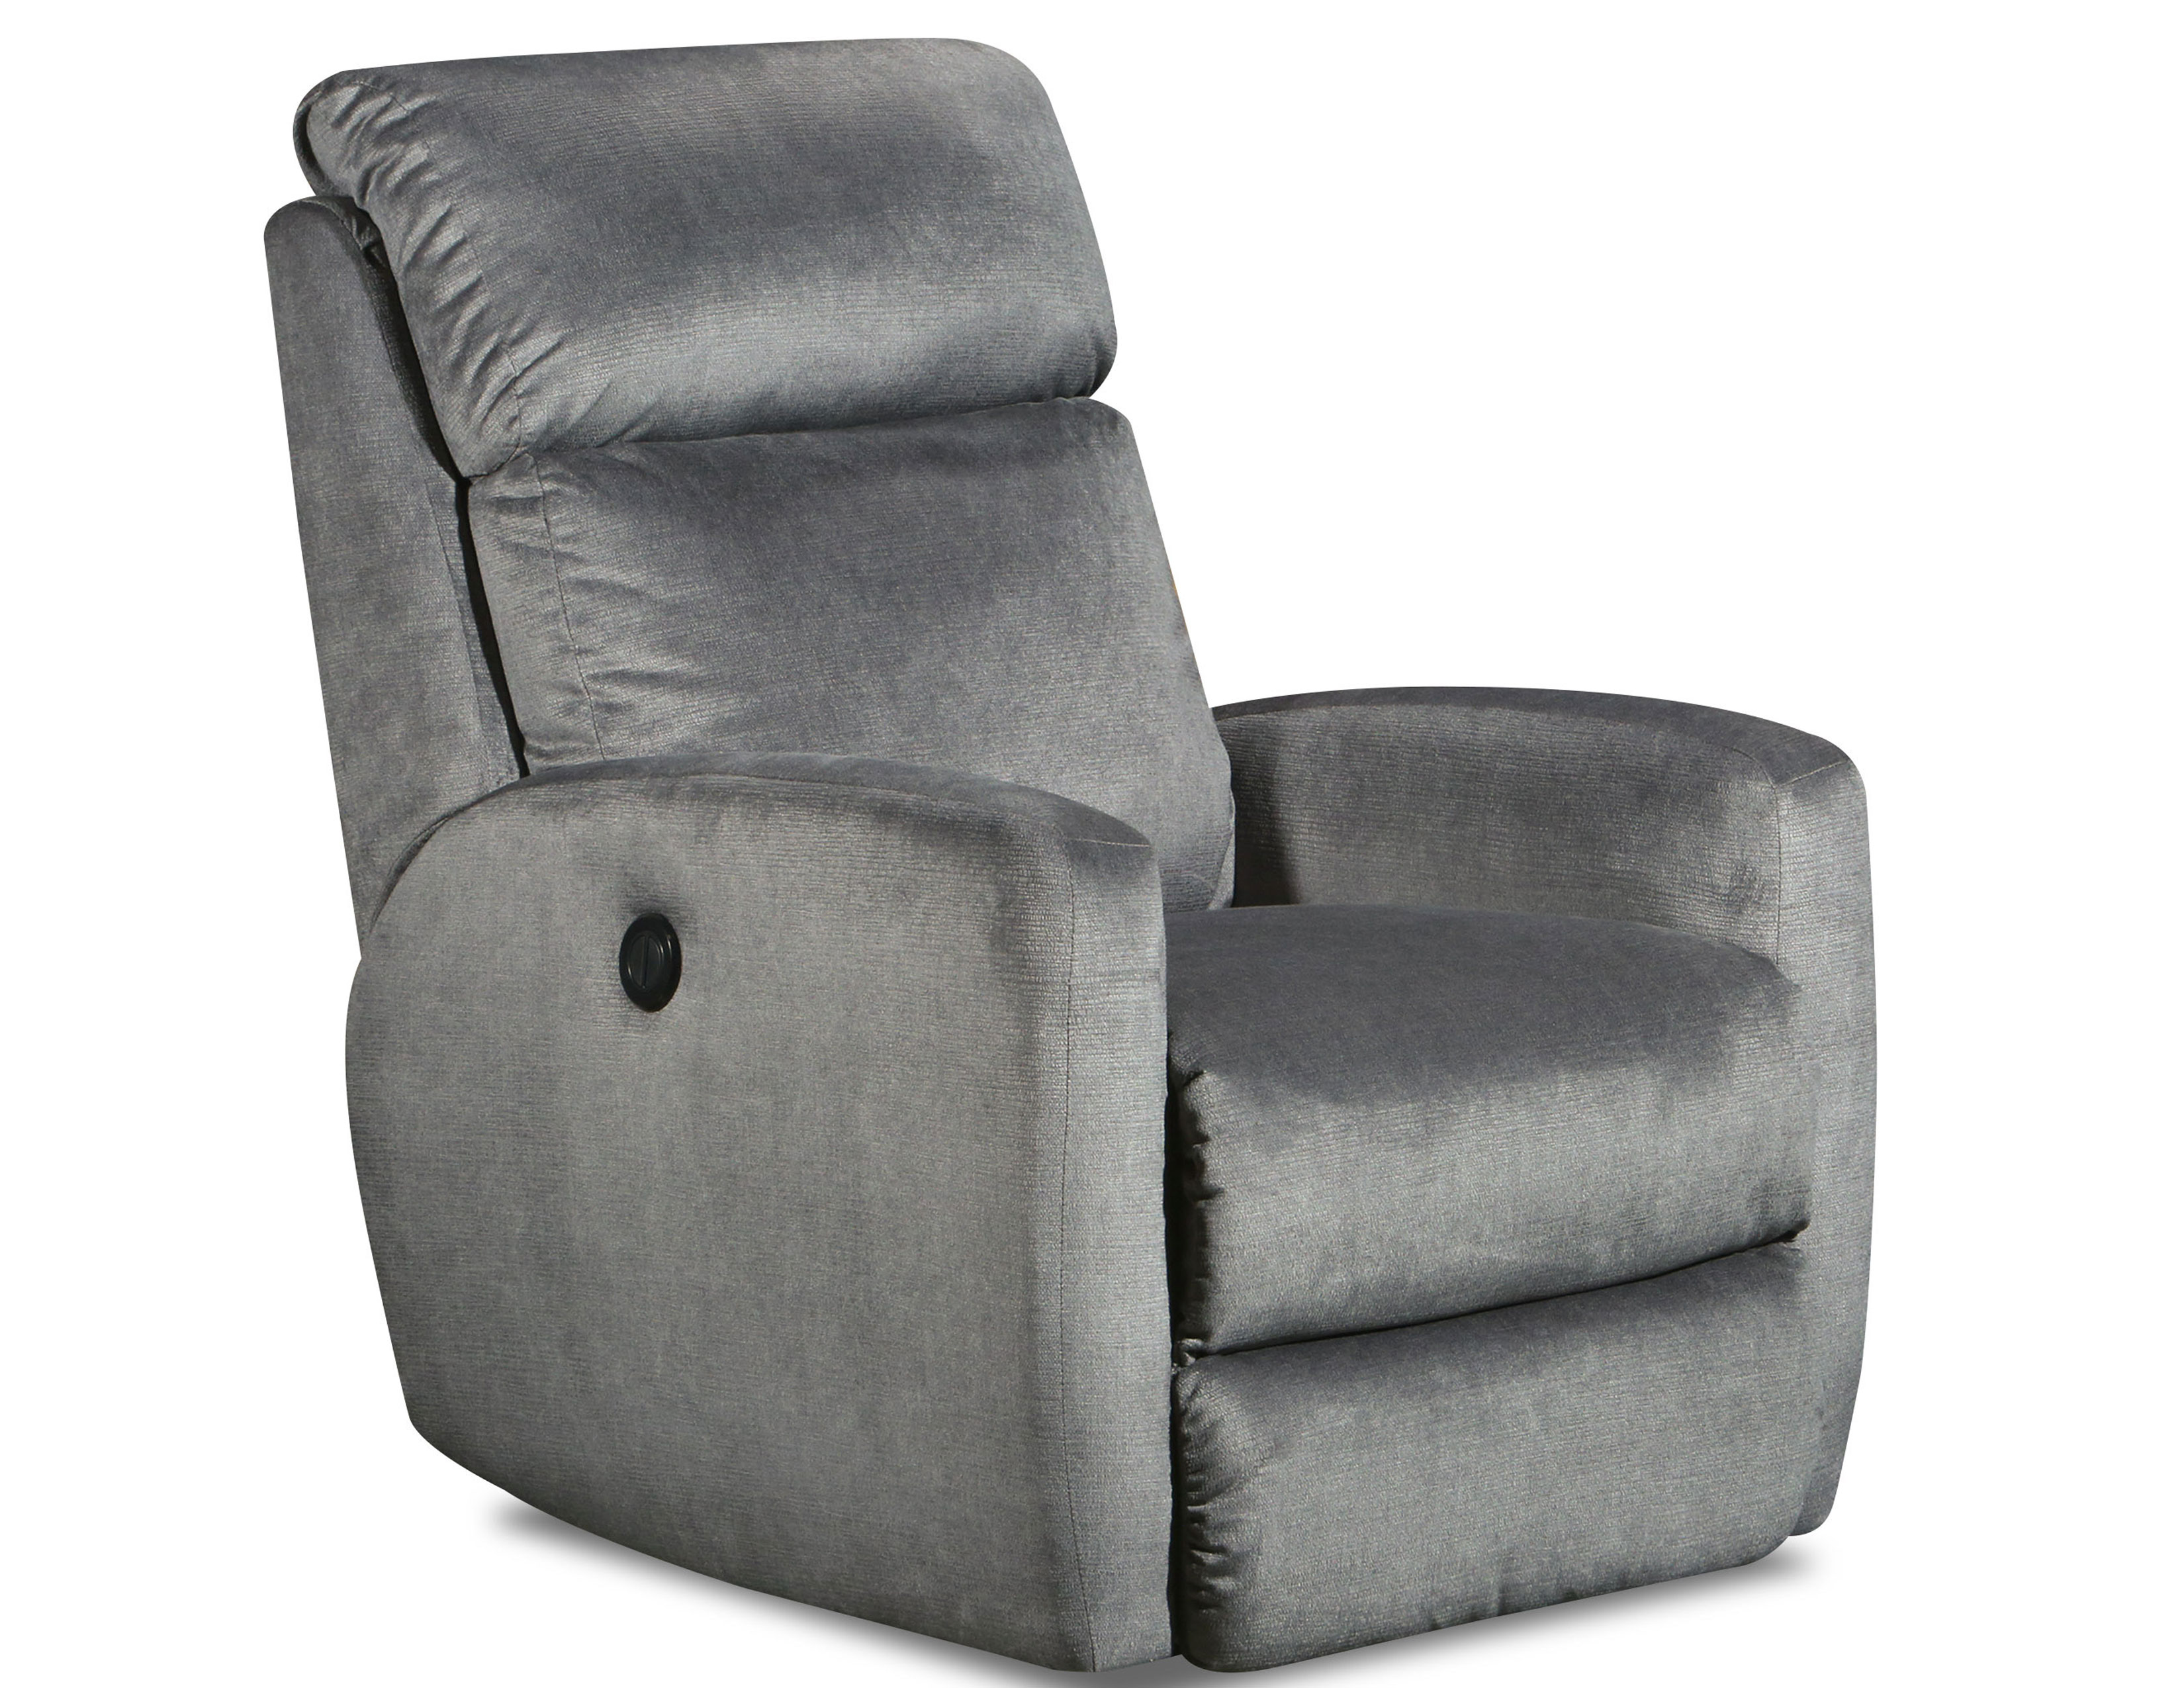 Surprising Primo 1144 Rocker Recliner 140 Fabrics And Sofas And Squirreltailoven Fun Painted Chair Ideas Images Squirreltailovenorg